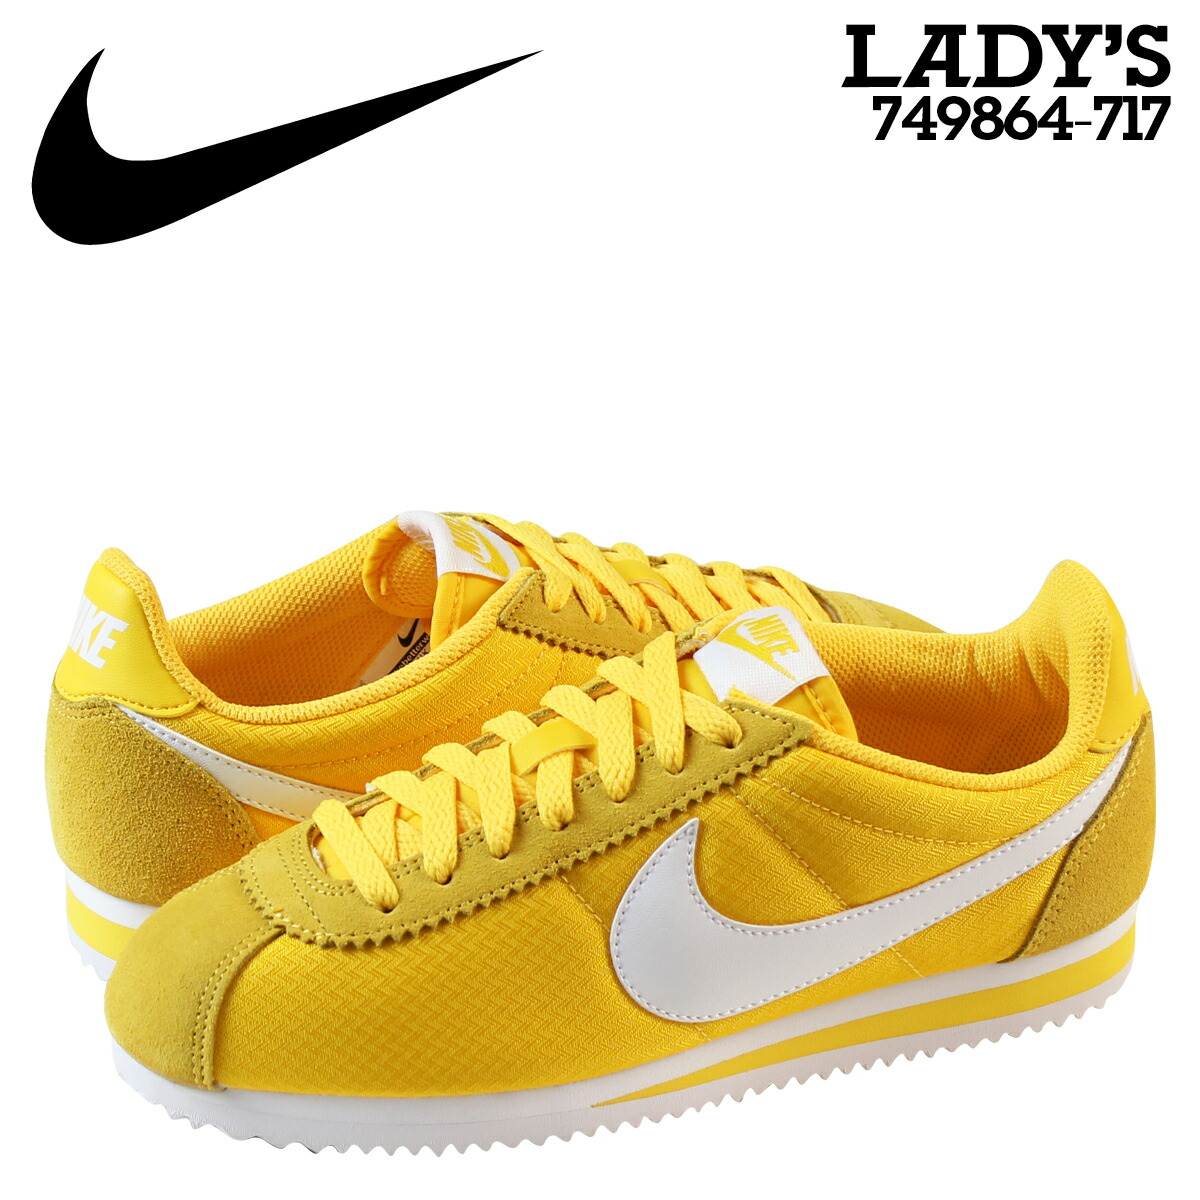 ALLSPORTS   SOLD OUT  Nike NIKE classic Cortez sneakers Womens WMNS CLASSIC  CORTEZ NYLON 749864-717 shoes yellow  2a620e50d